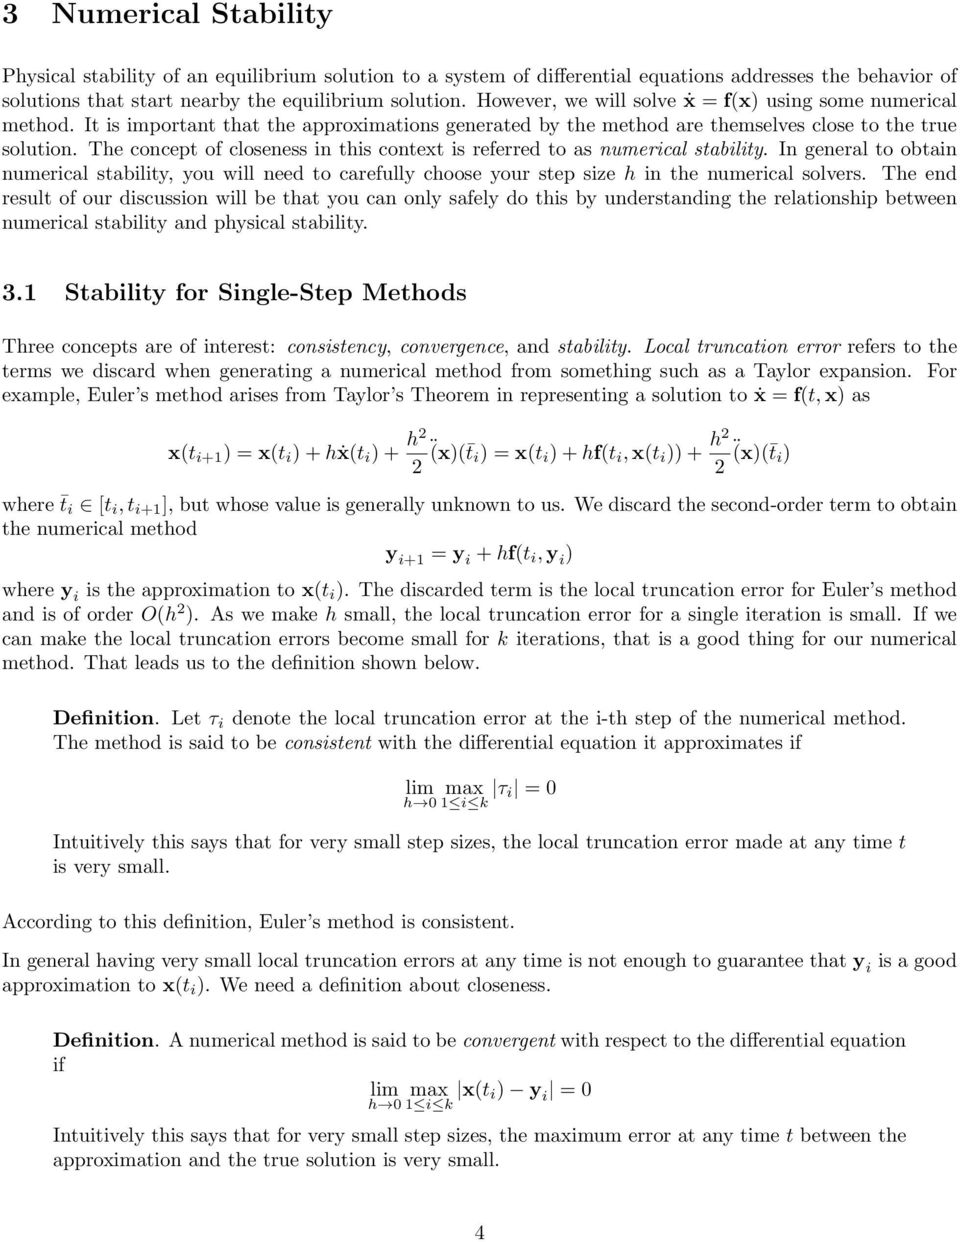 stability analysis for systems of differential equations - pdf